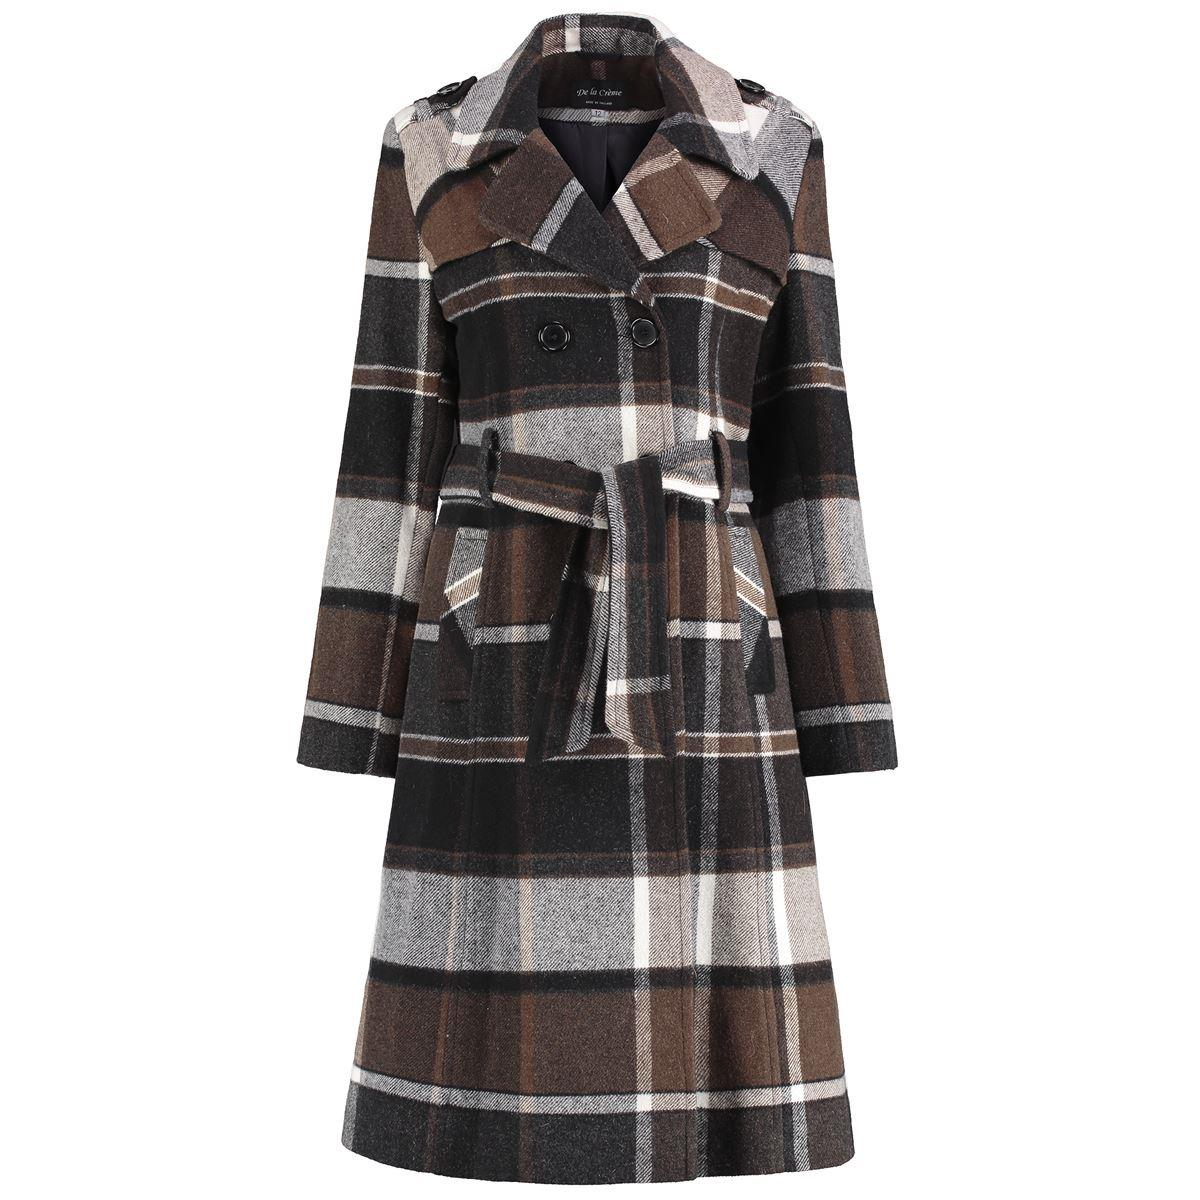 Anastasia - Womens Check Tie Belt Winter Wool Coat